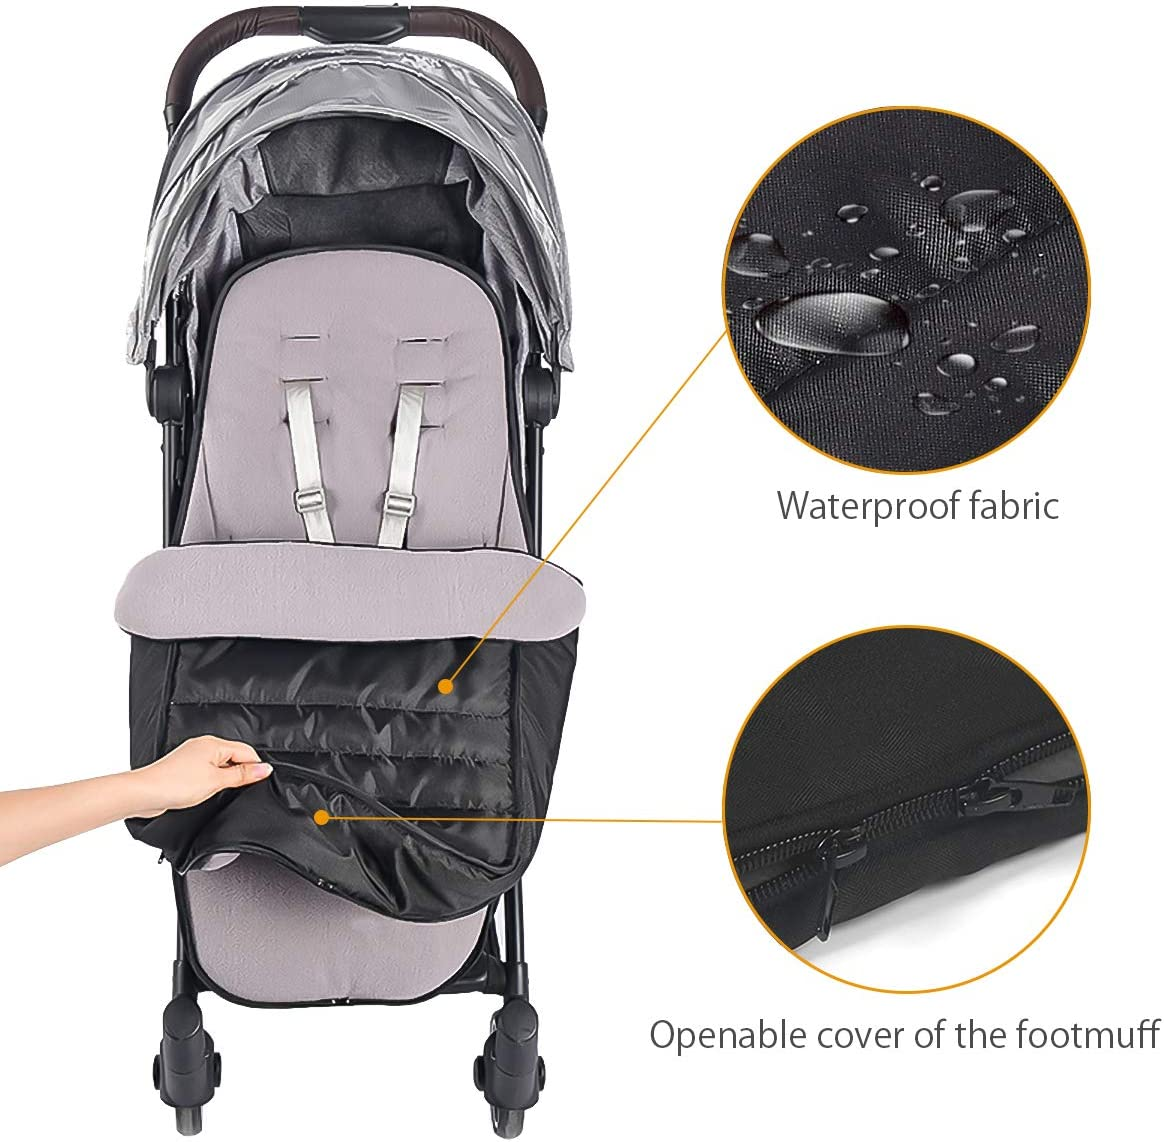 SONARIN Universal Premium Pushchair Footmuff,Waterproof and Windproof,Cosy Toes Fleece Lined Universal Fitting for Pushchairs Strollers Prams Buggy Black